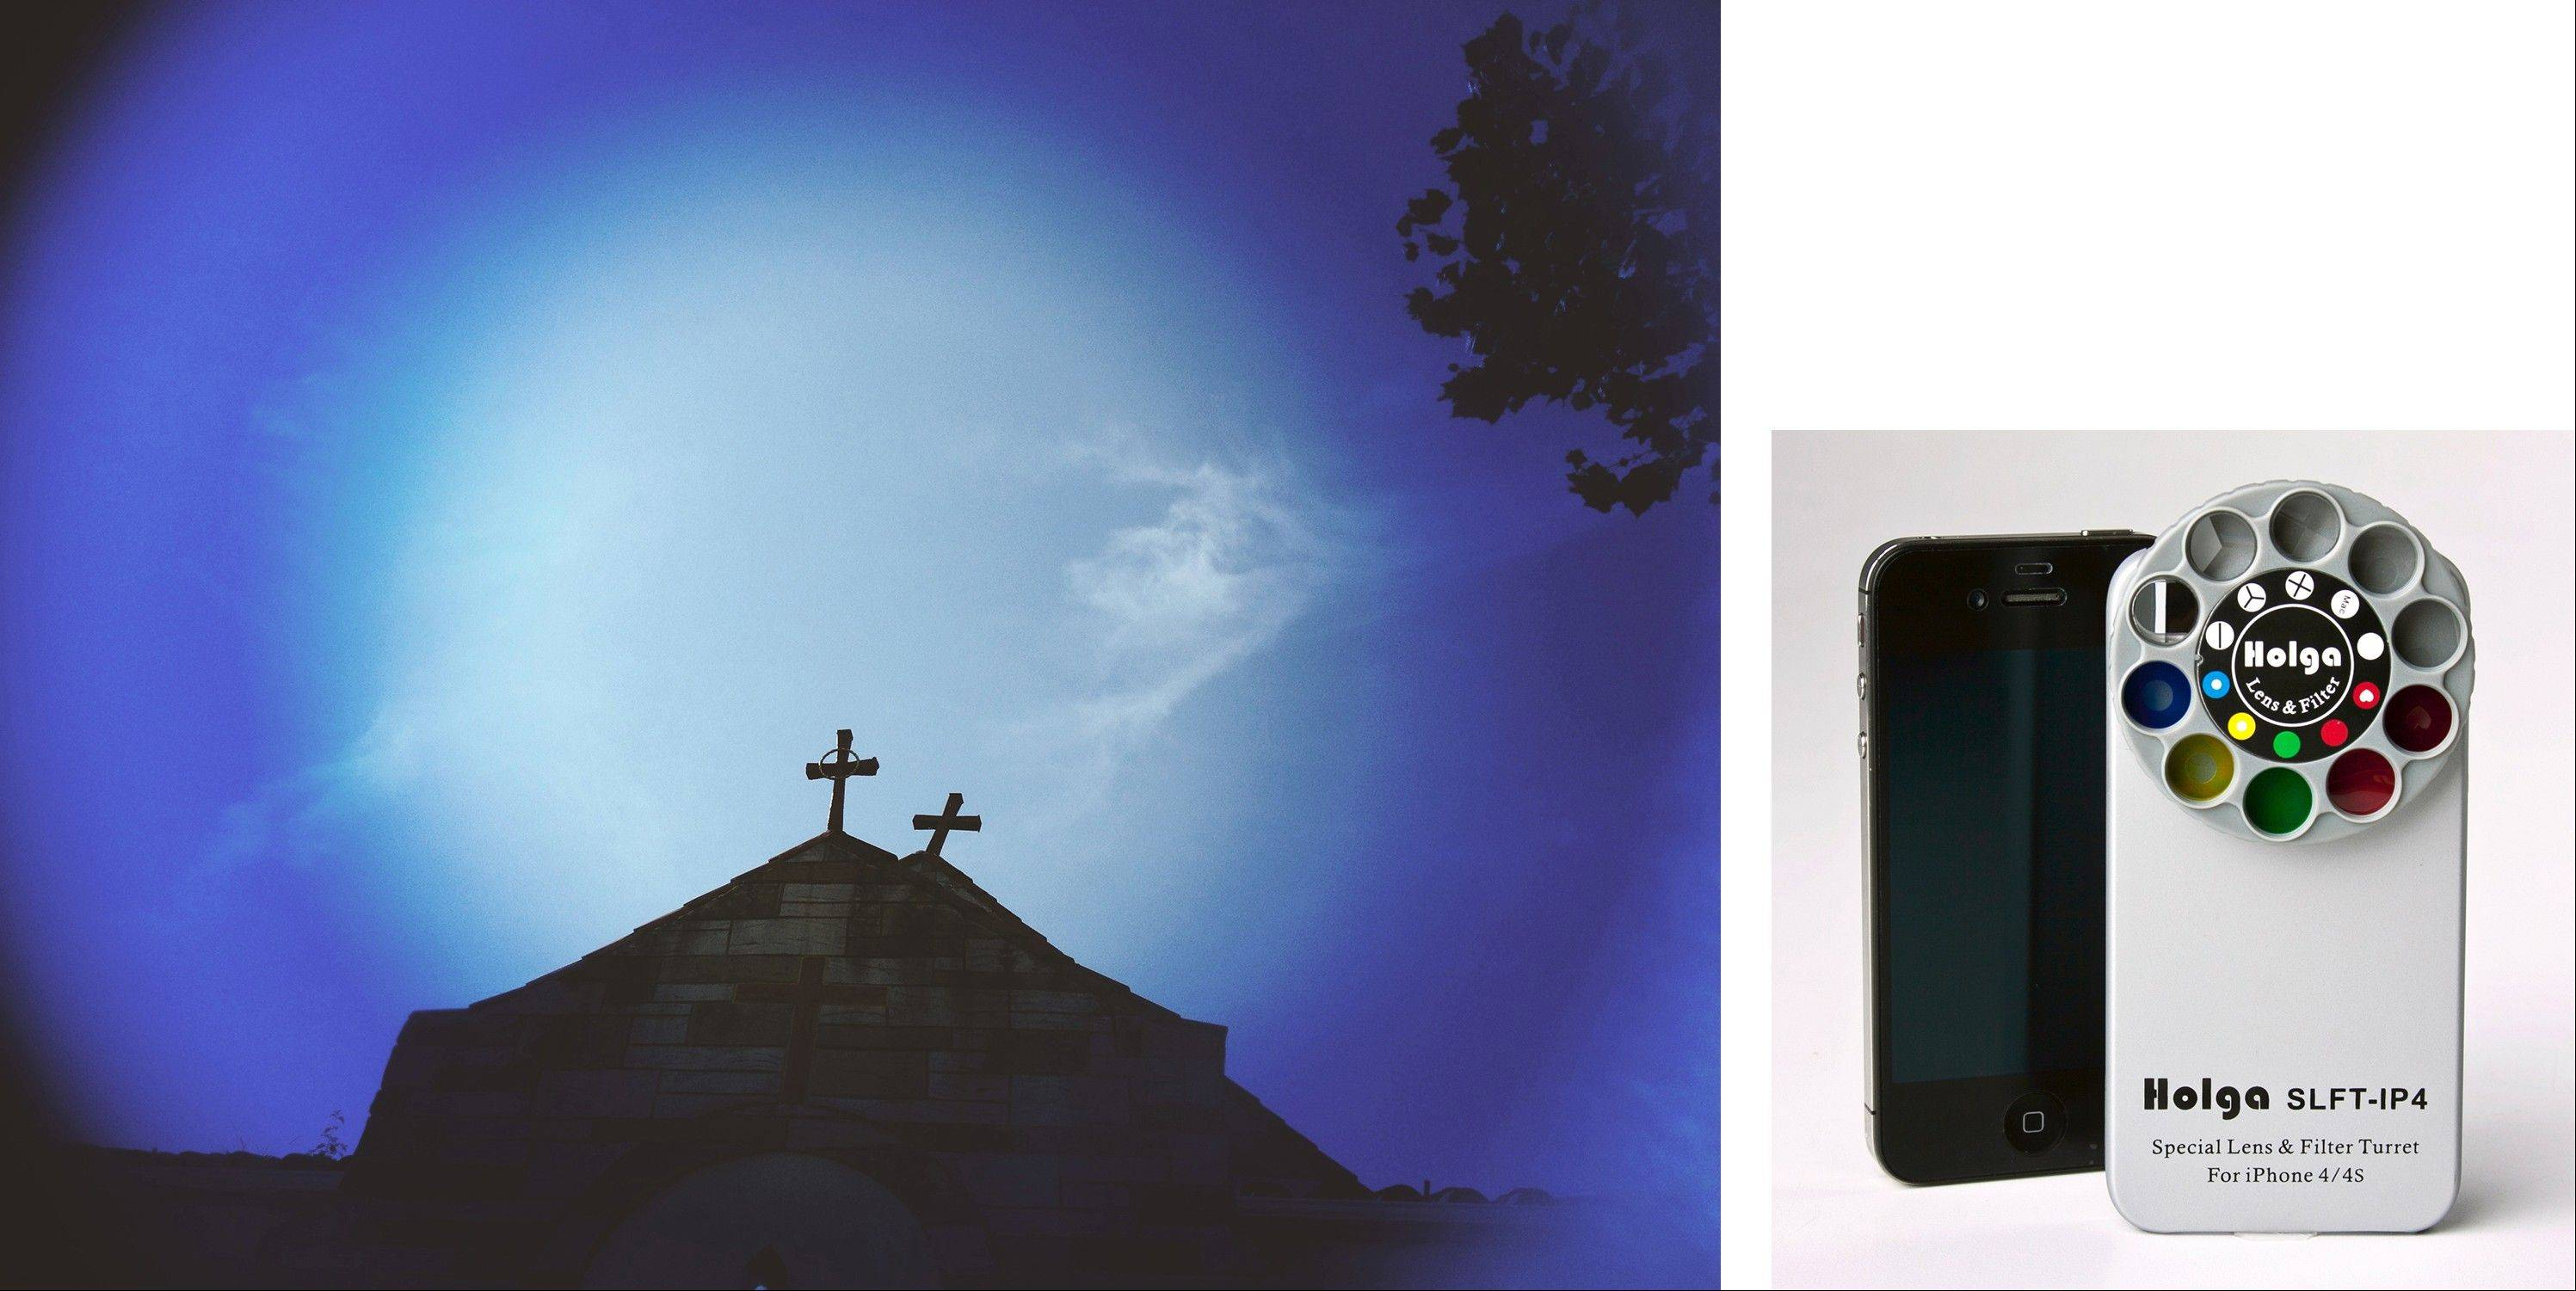 The top of the Ebenezer Baptist Church in Washington (left) as shot with the Holga Special Lens & Filter Turret, right.